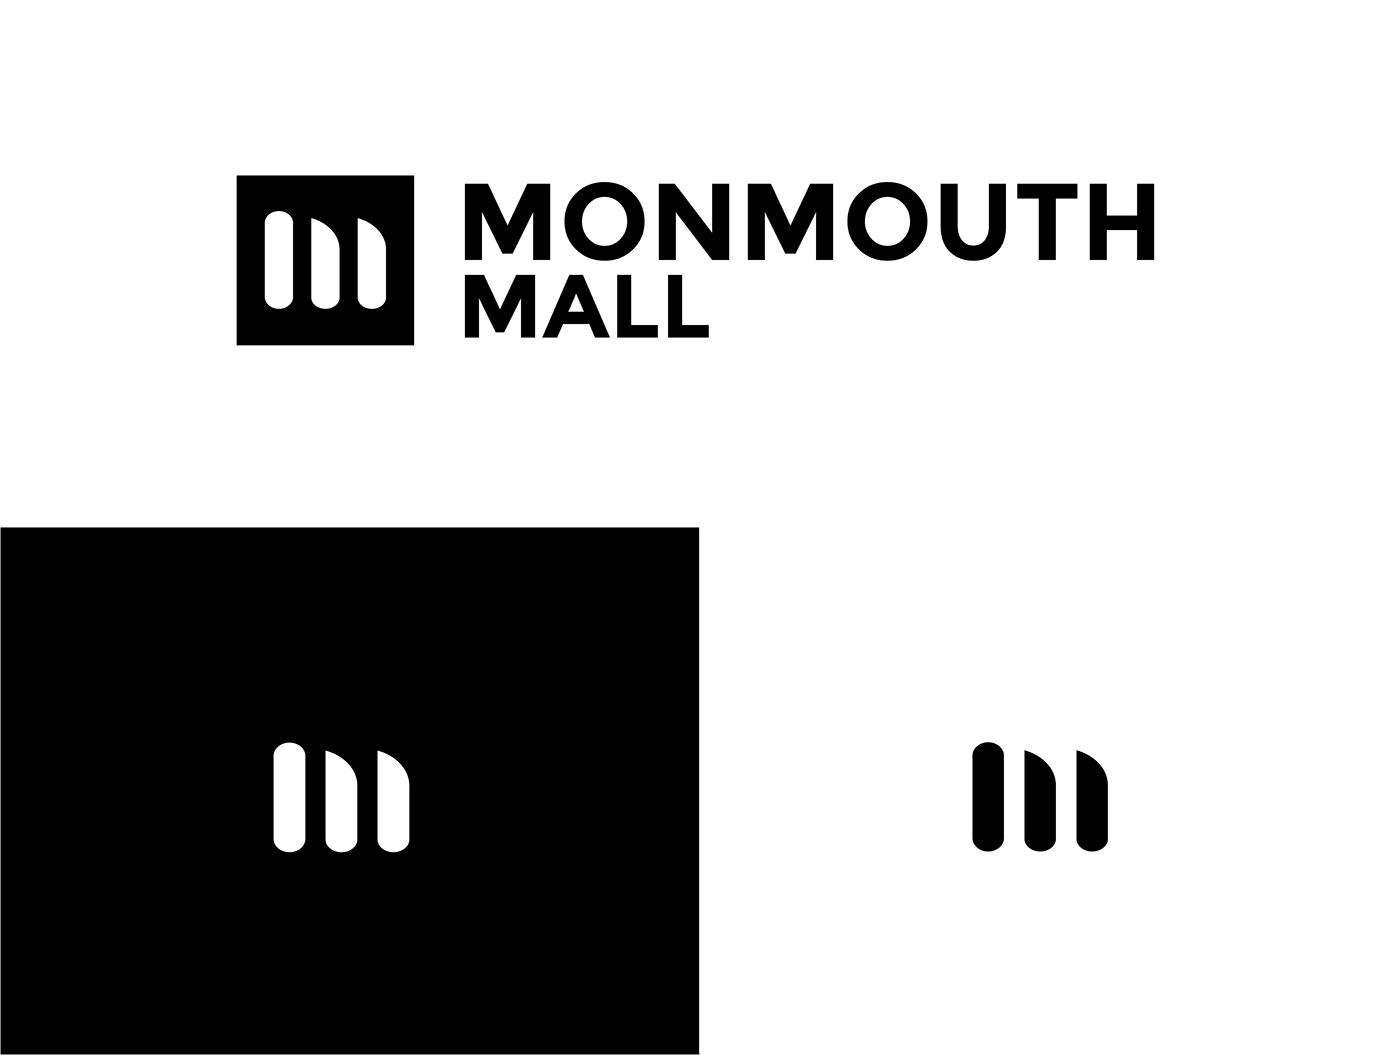 Monmouth Mall on Behance